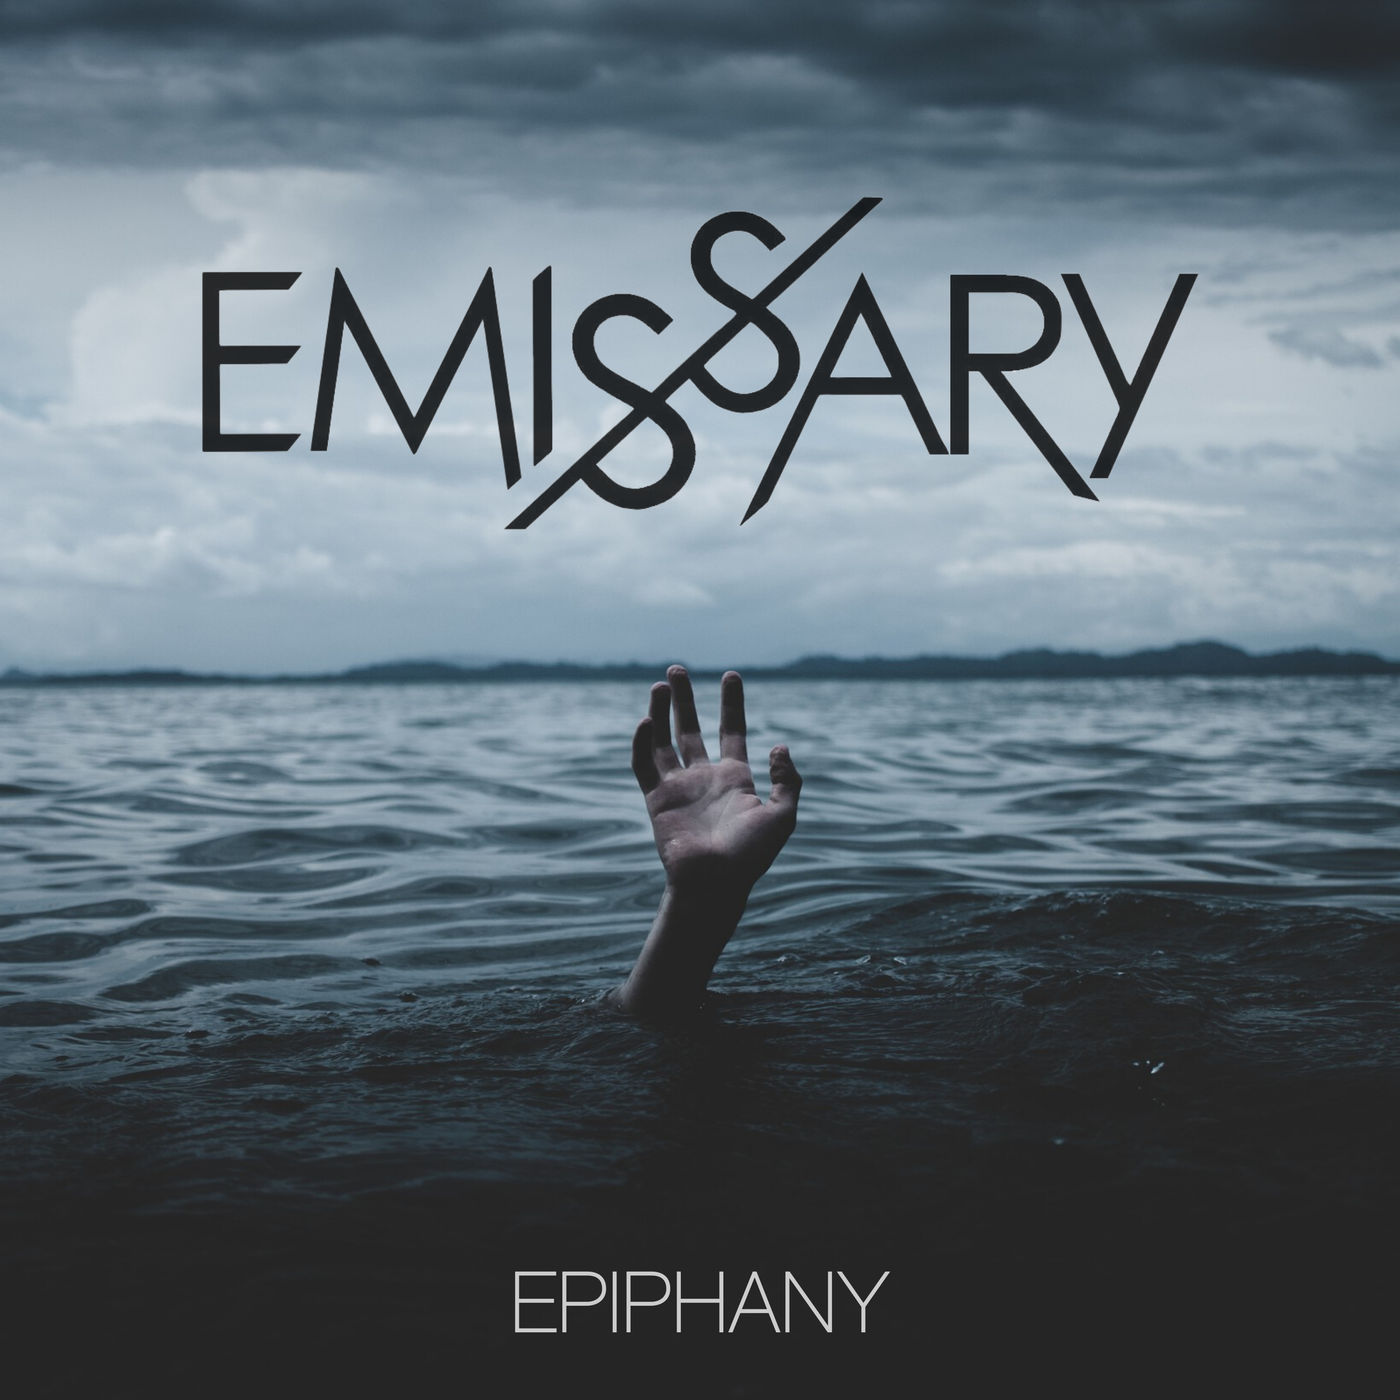 Emissary - Epiphany [single] (2020)